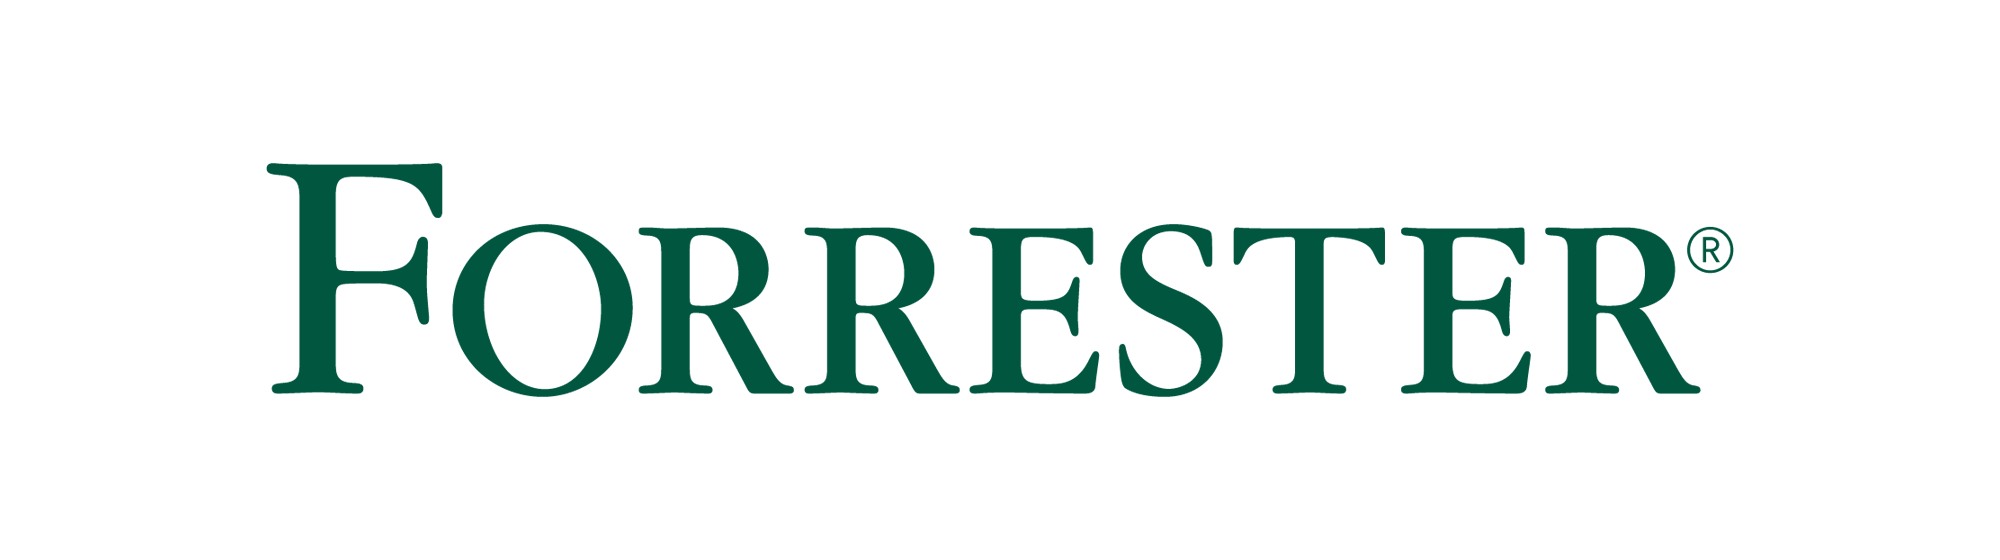 Forrester Webinar – Protecting Industrial Infrastructure from Cyberattacks